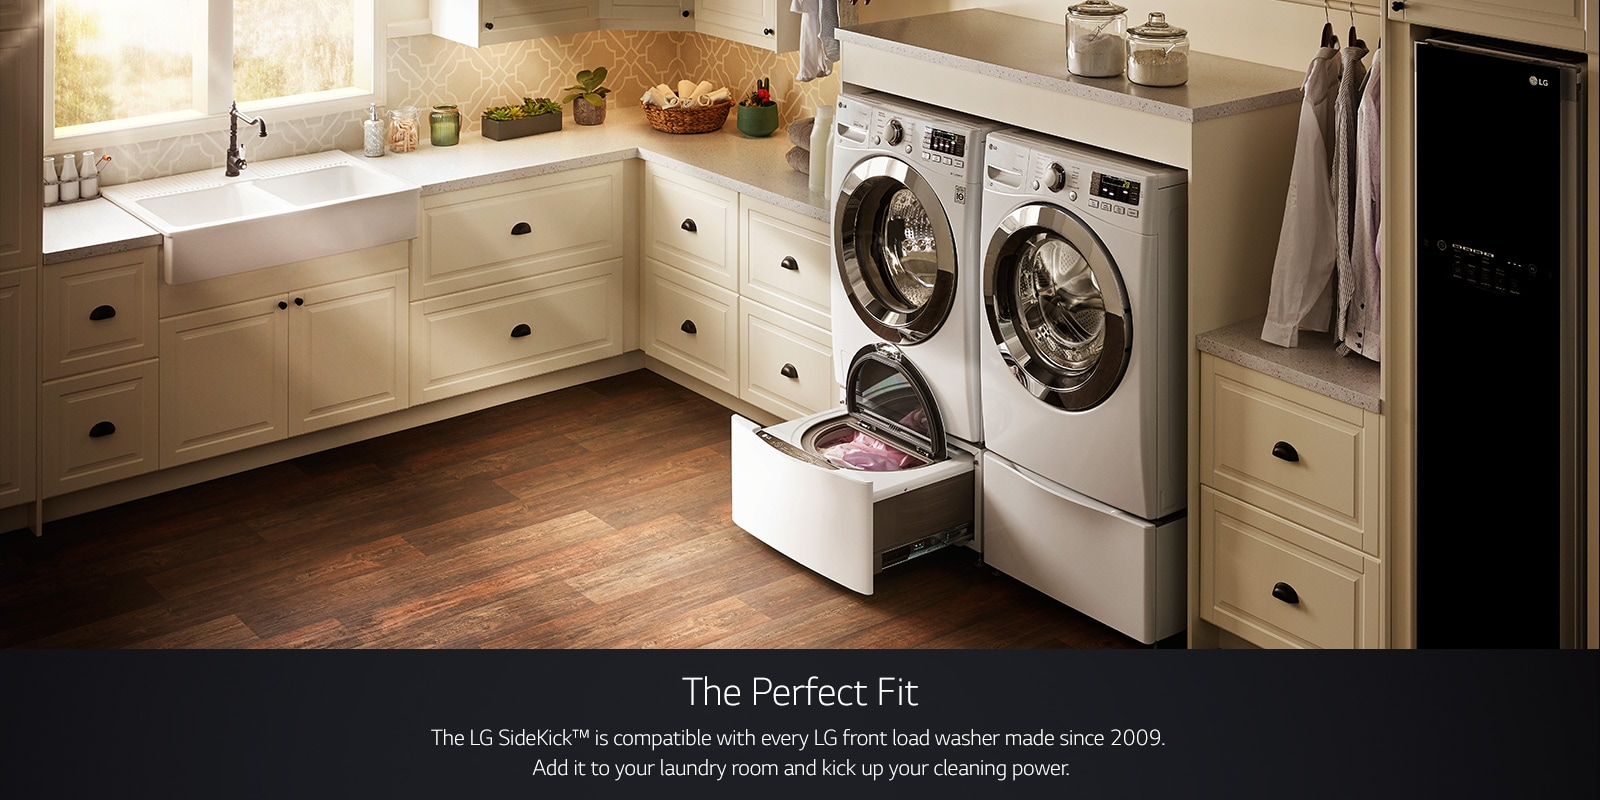 LG TWINWash™: Dual Washer w/ Flexible Washing Options | LG USA on counter over front-loading washer, glass washer, laundry room front loader counter top,